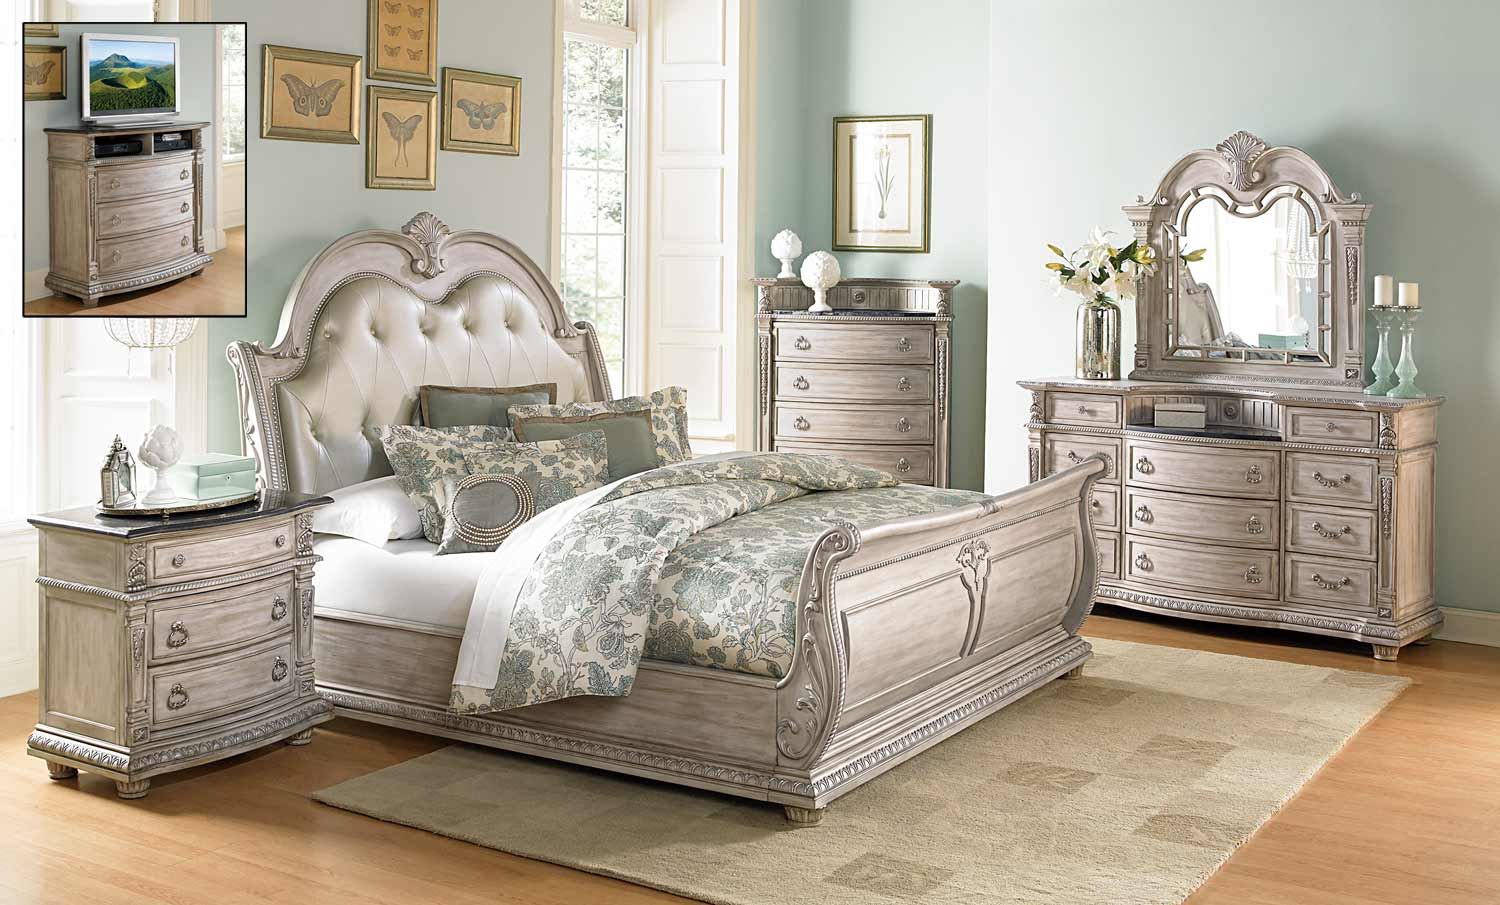 Homelegance Palace II Bedroom Set - Weathered White Rub-Through